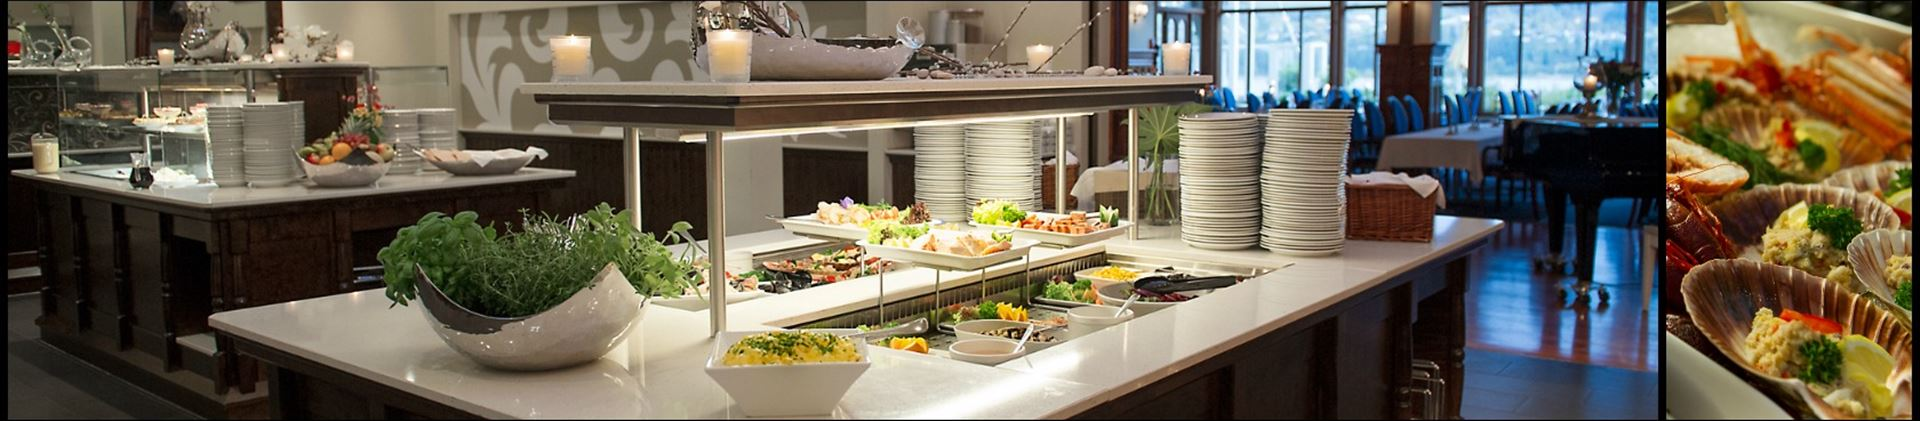 Buffet i restauranten